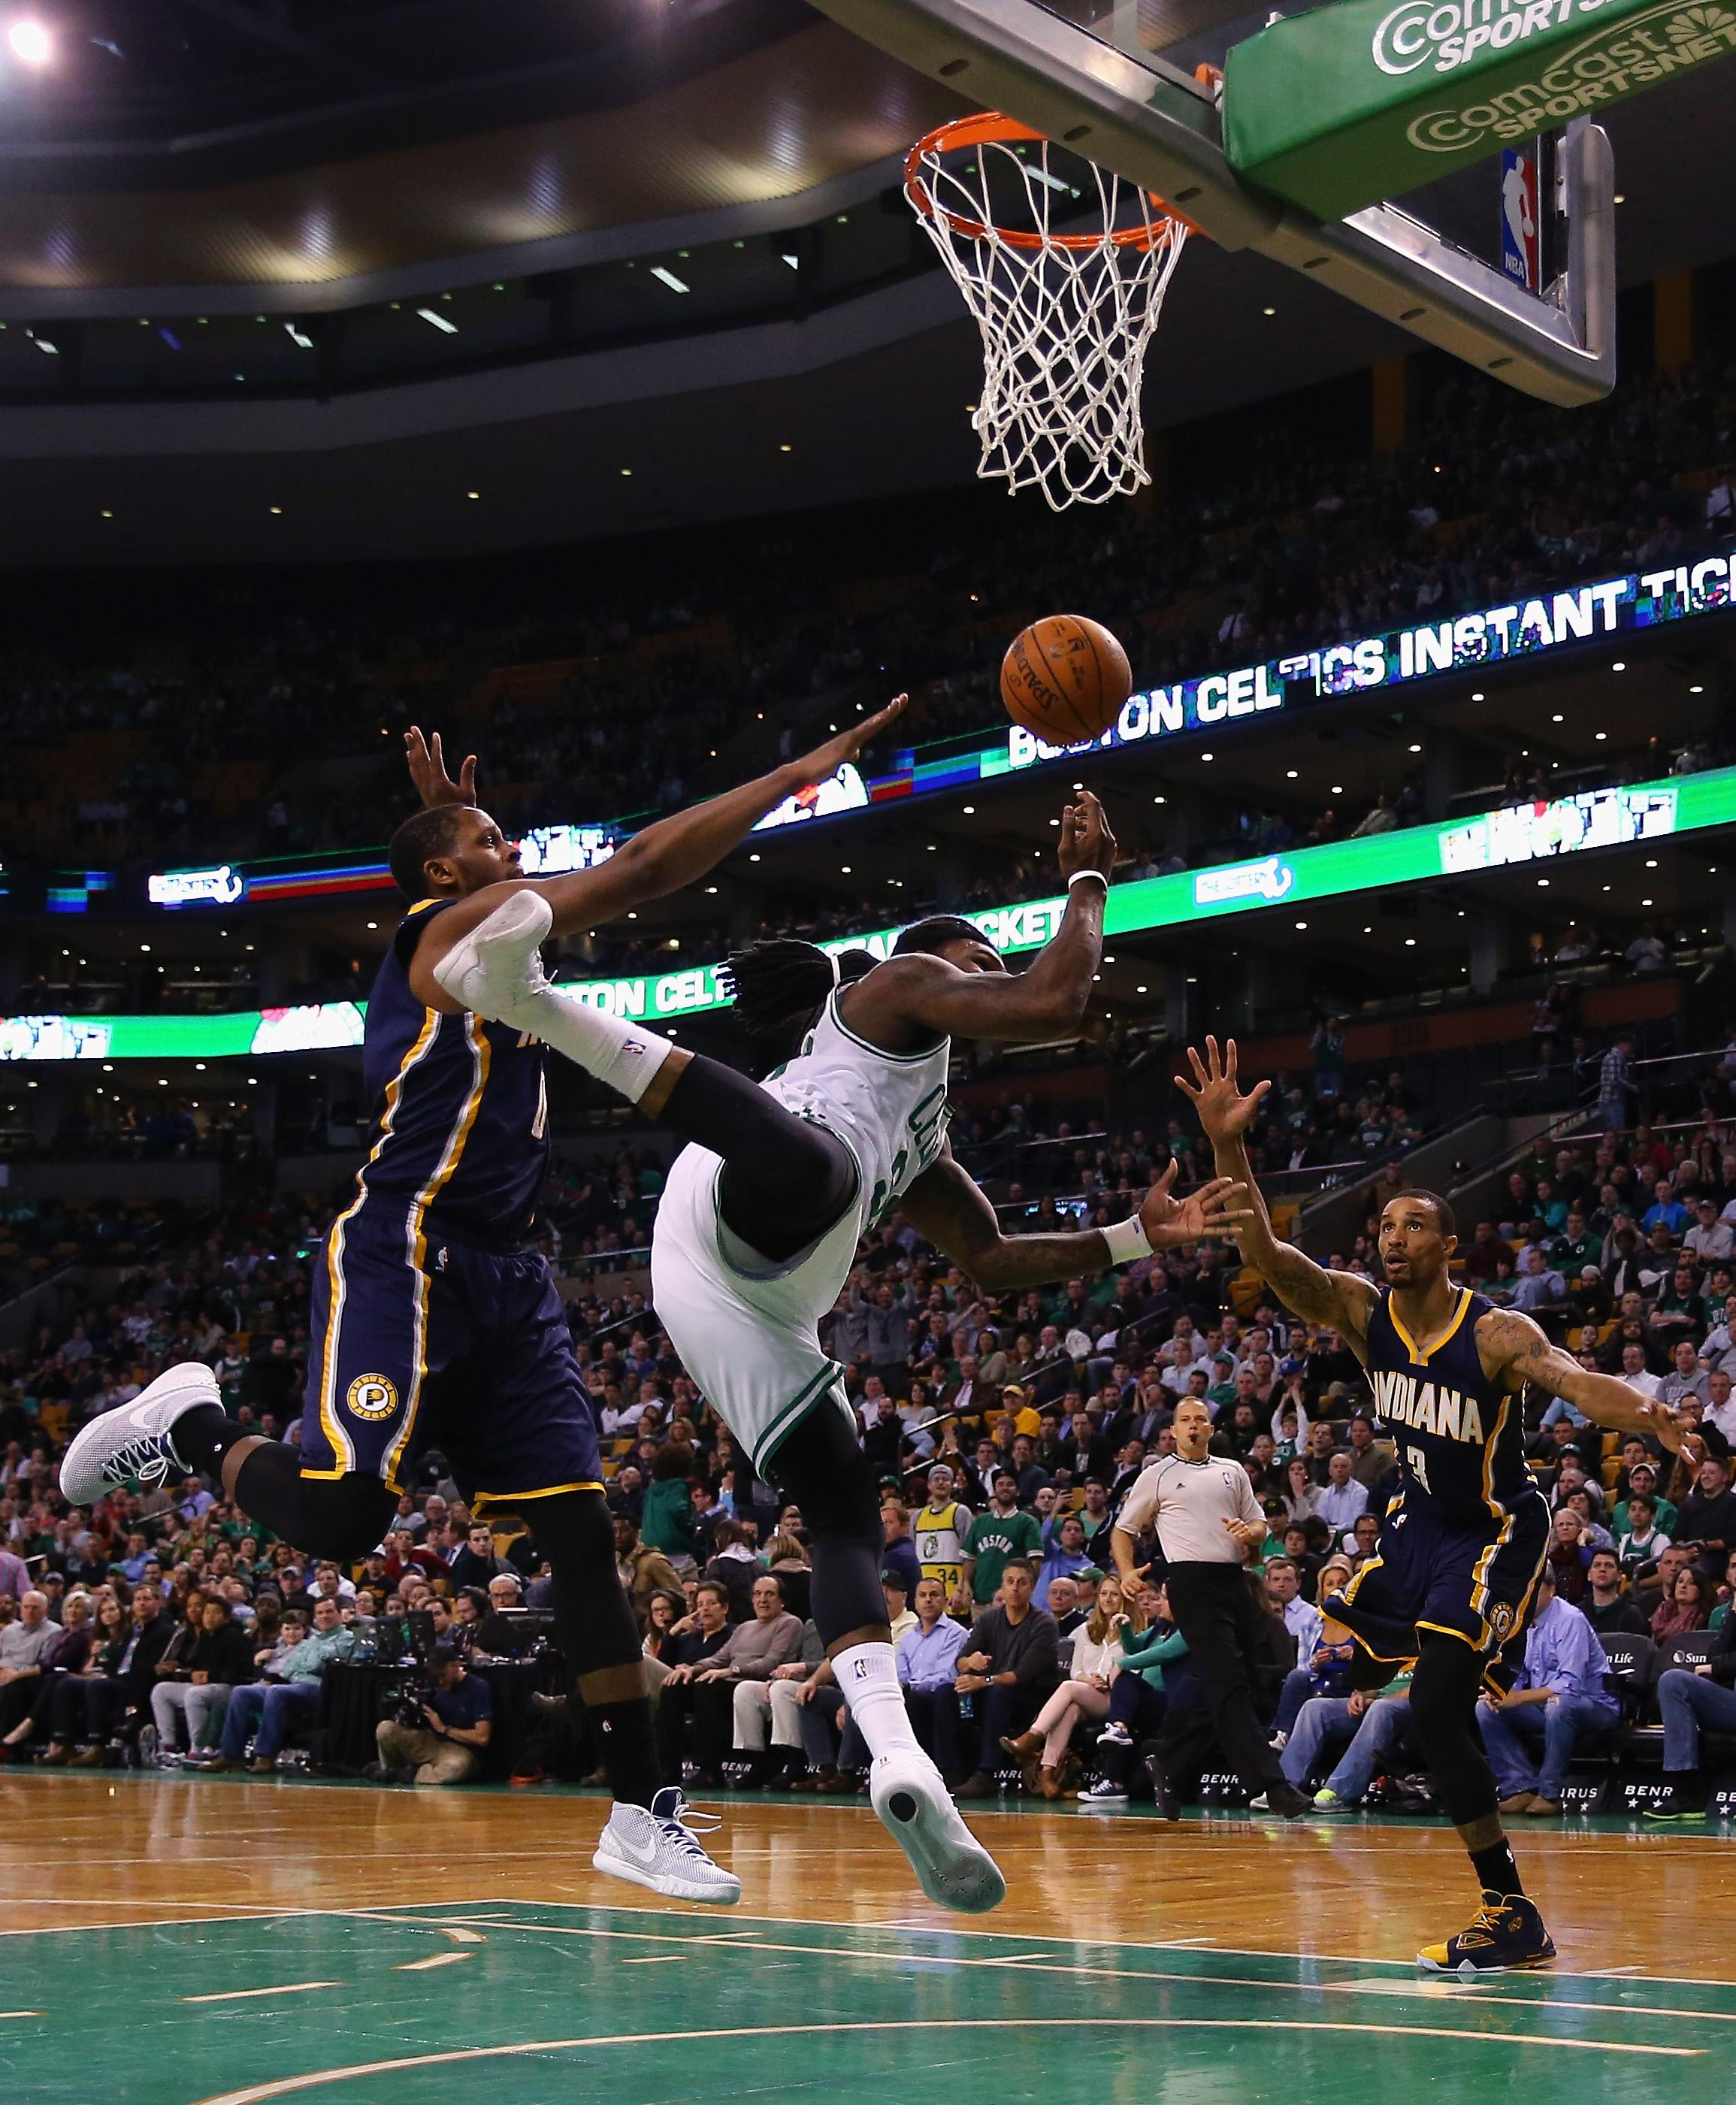 Olynyk overcomes eye injury, leads Celts past Pacers 100-87